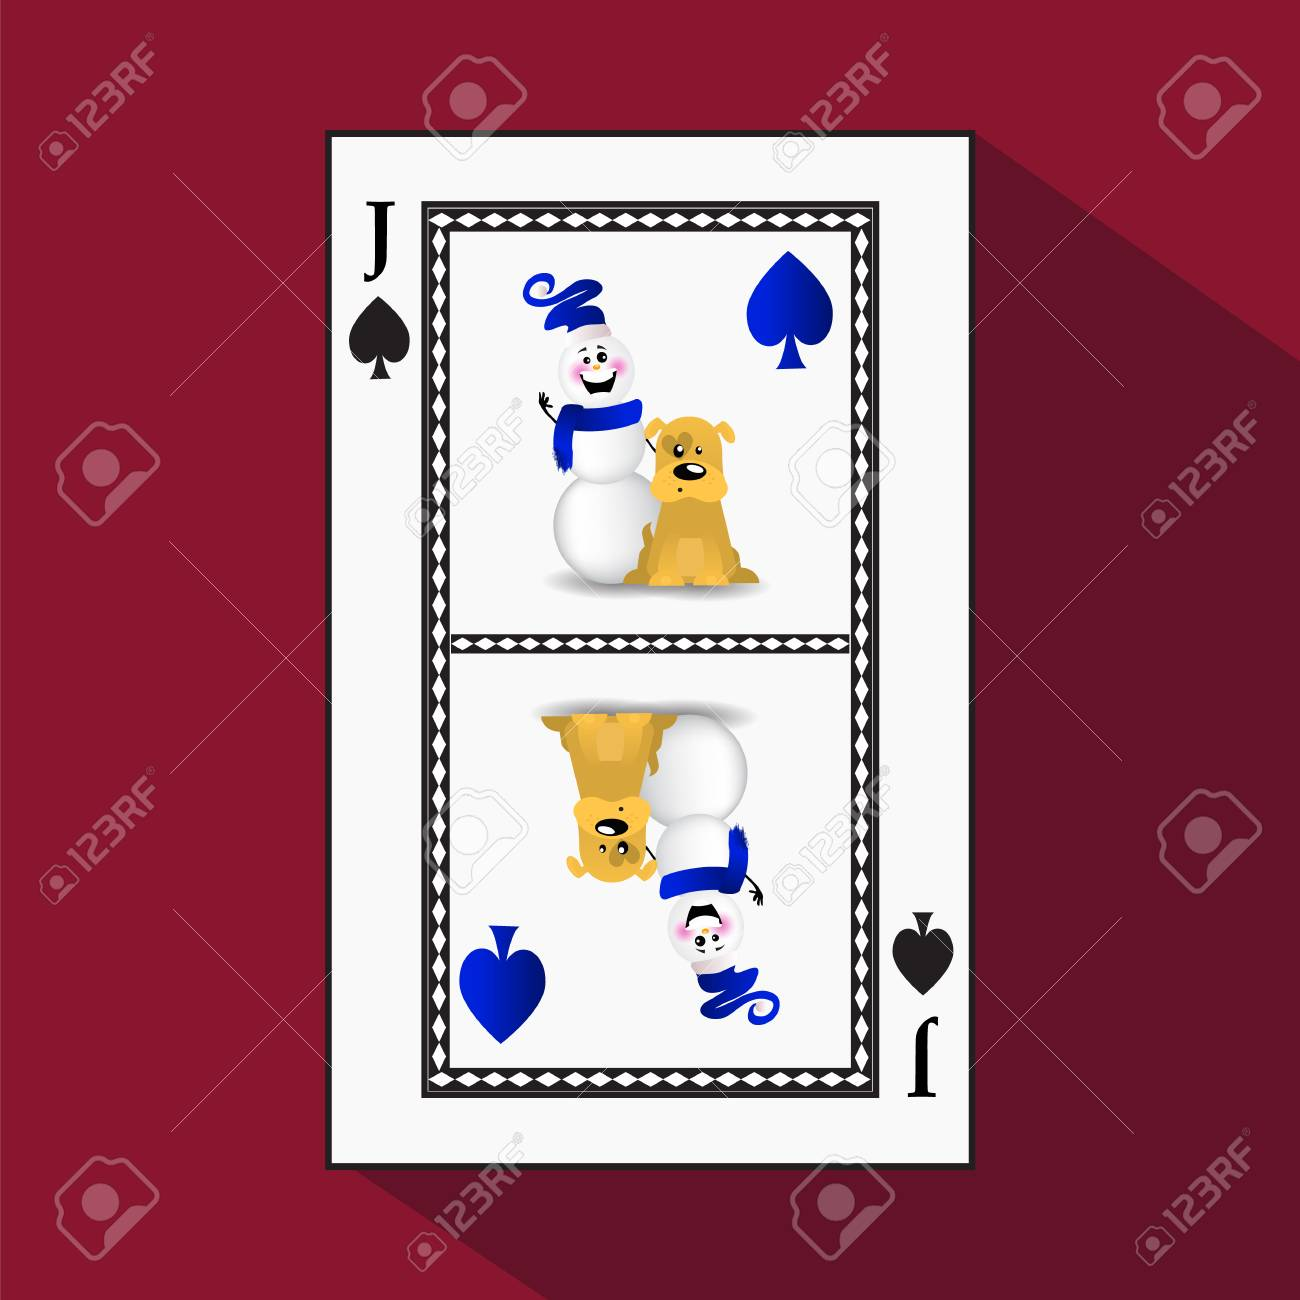 Card New Years Poker Vector Illustration The King Is A Diamond